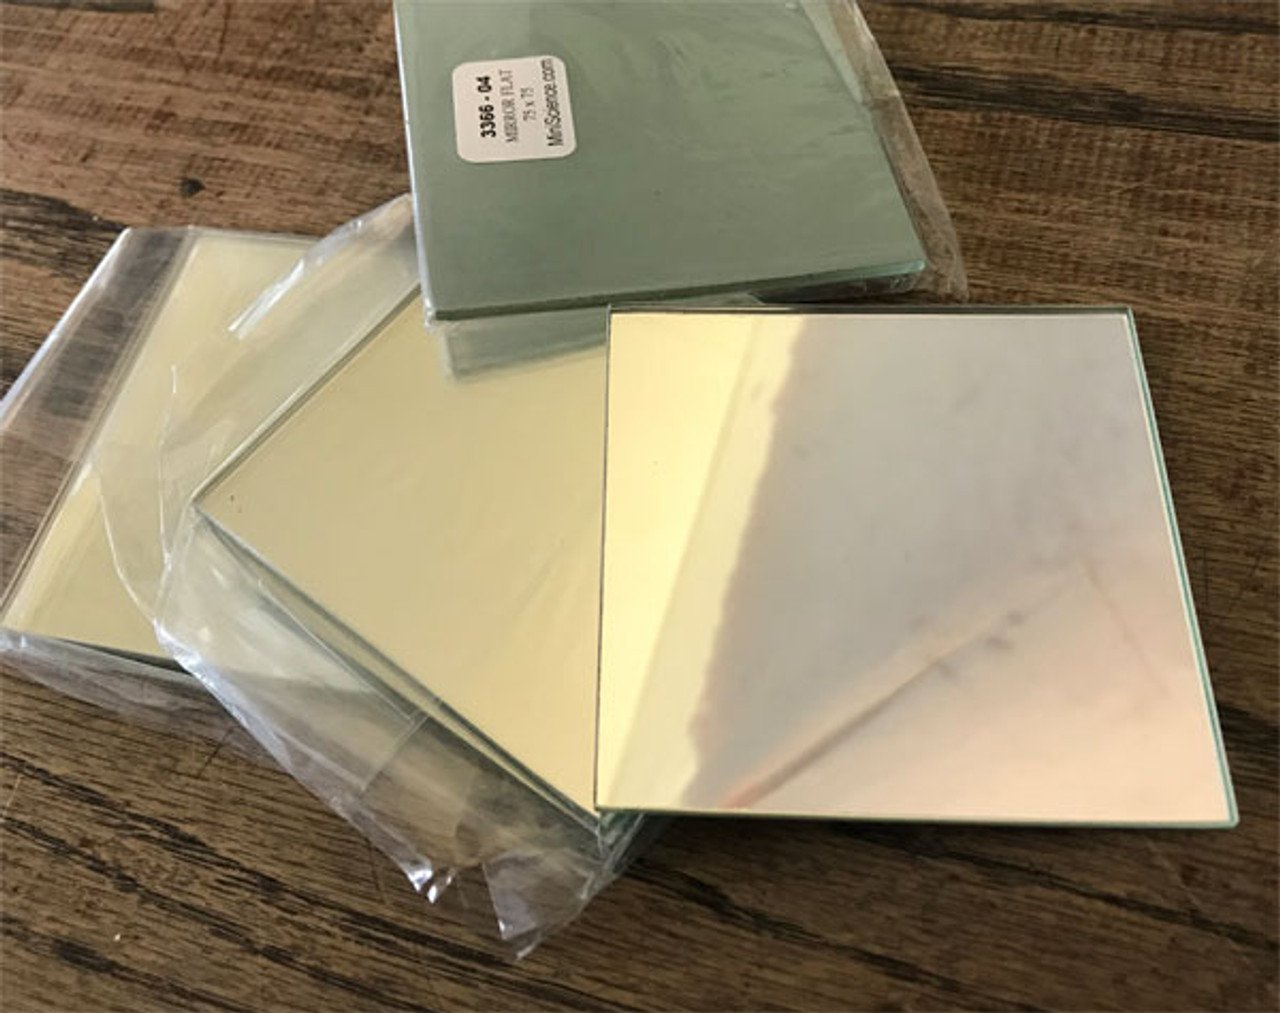 Flat glass mirrors are individually covered by a polybag